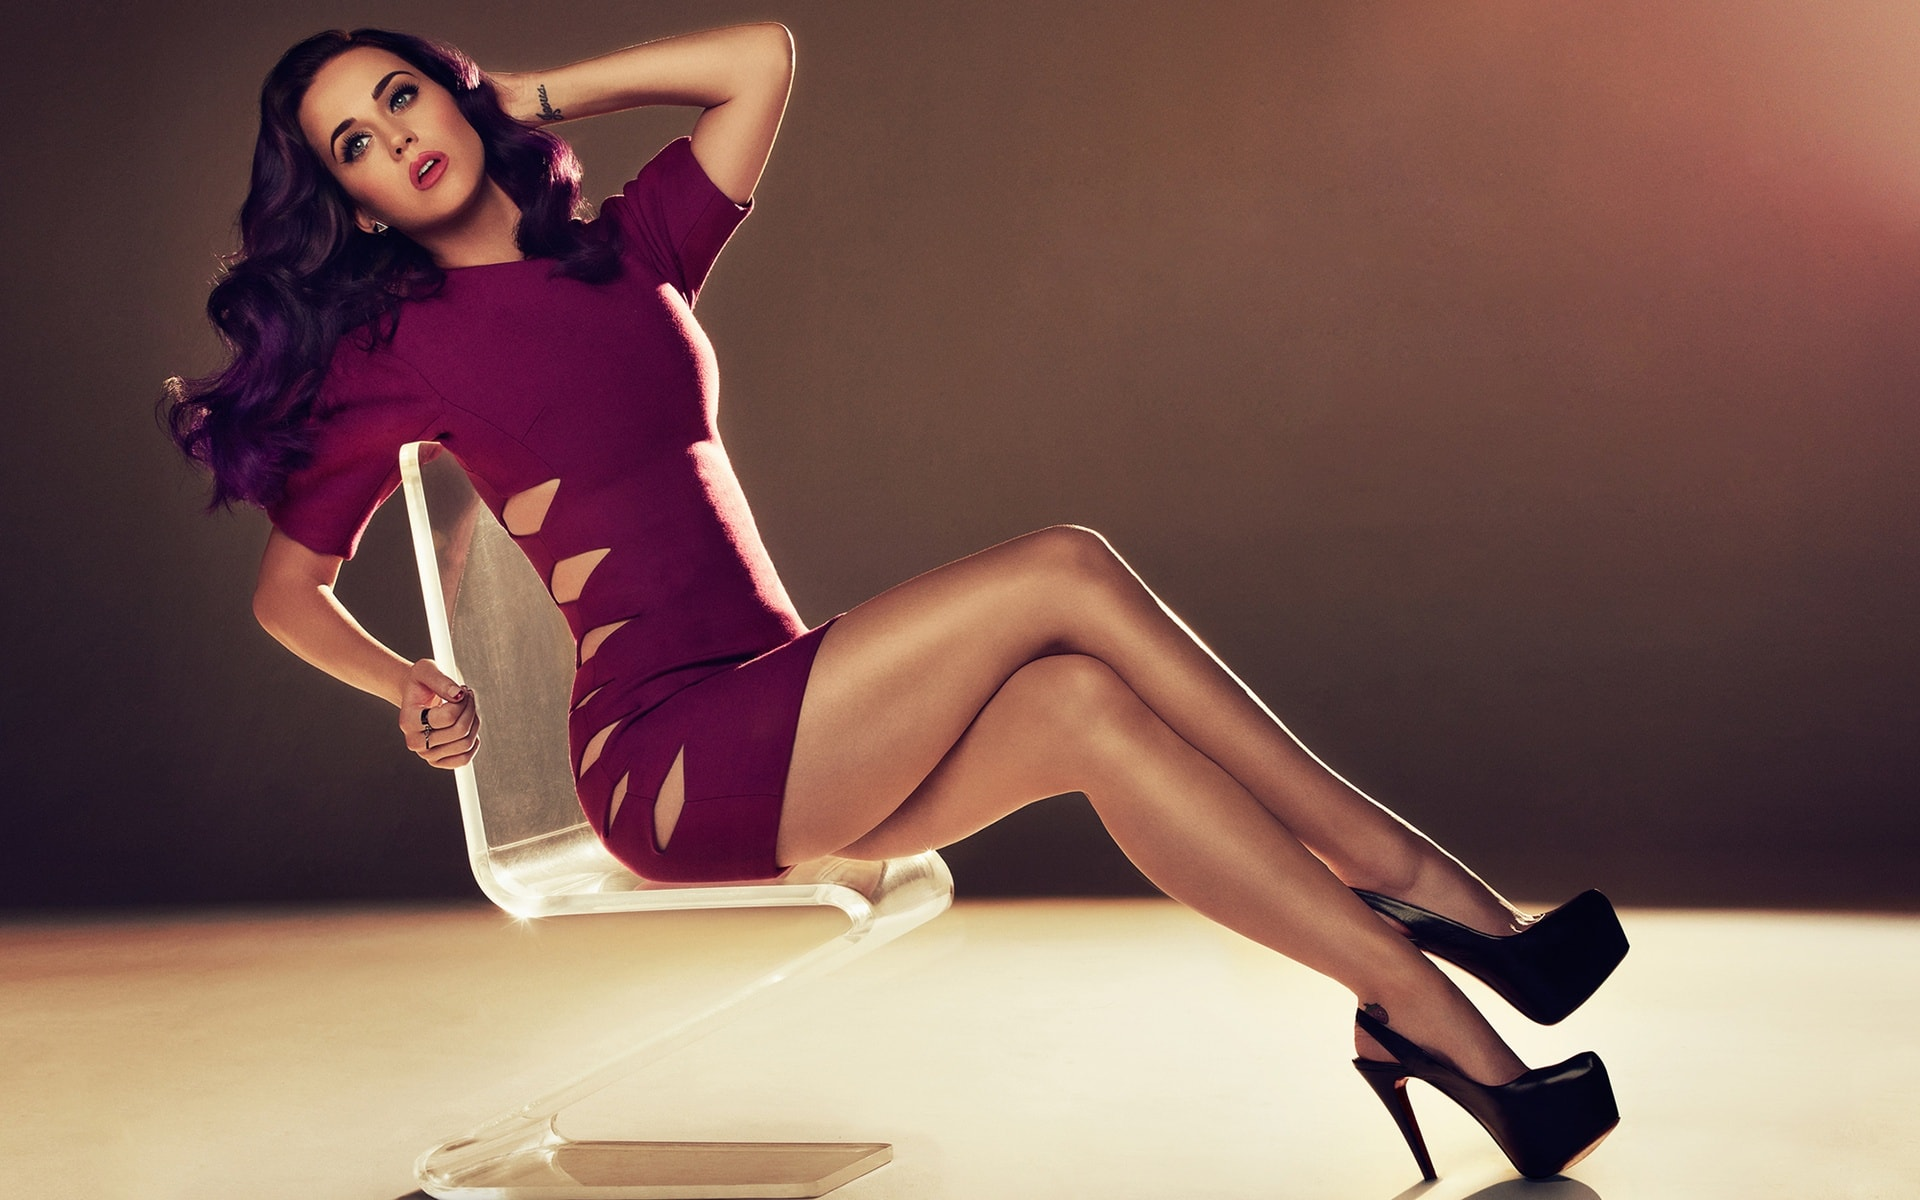 Katy Perry Hd Wallpapers 7wallpapers Net